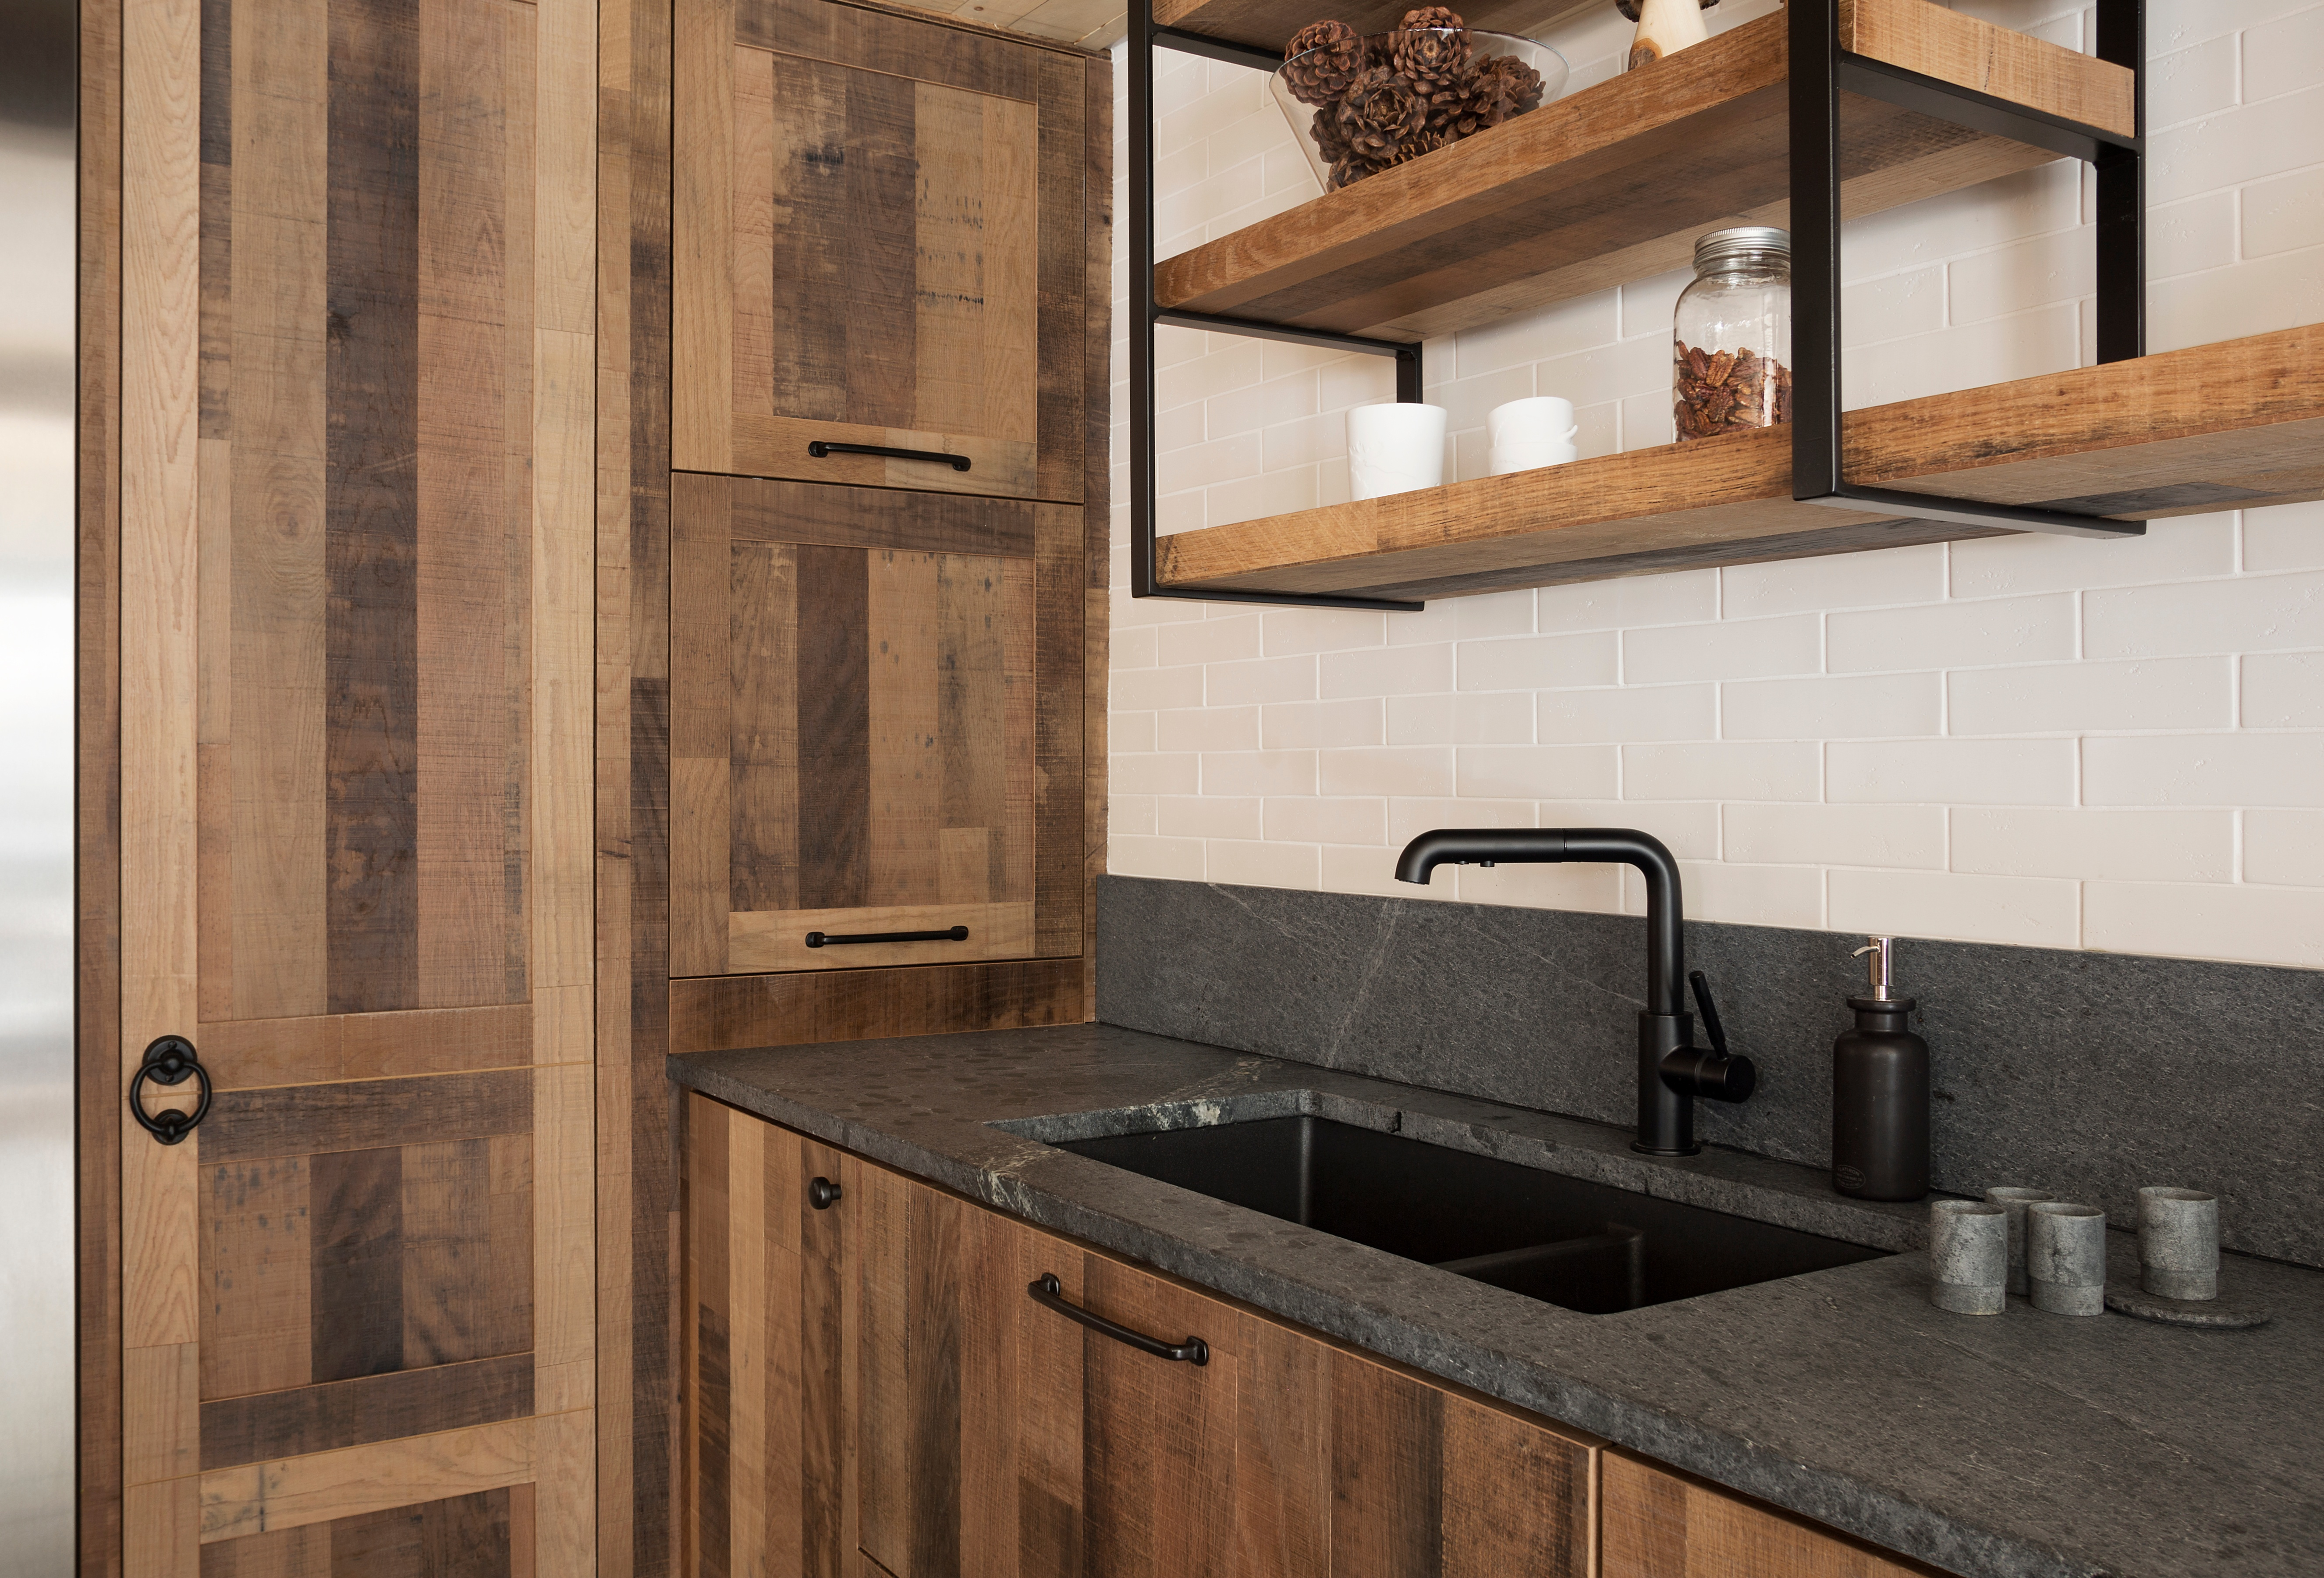 chef-marchand-soapstone-kitchen-cabinet-detail.jpg